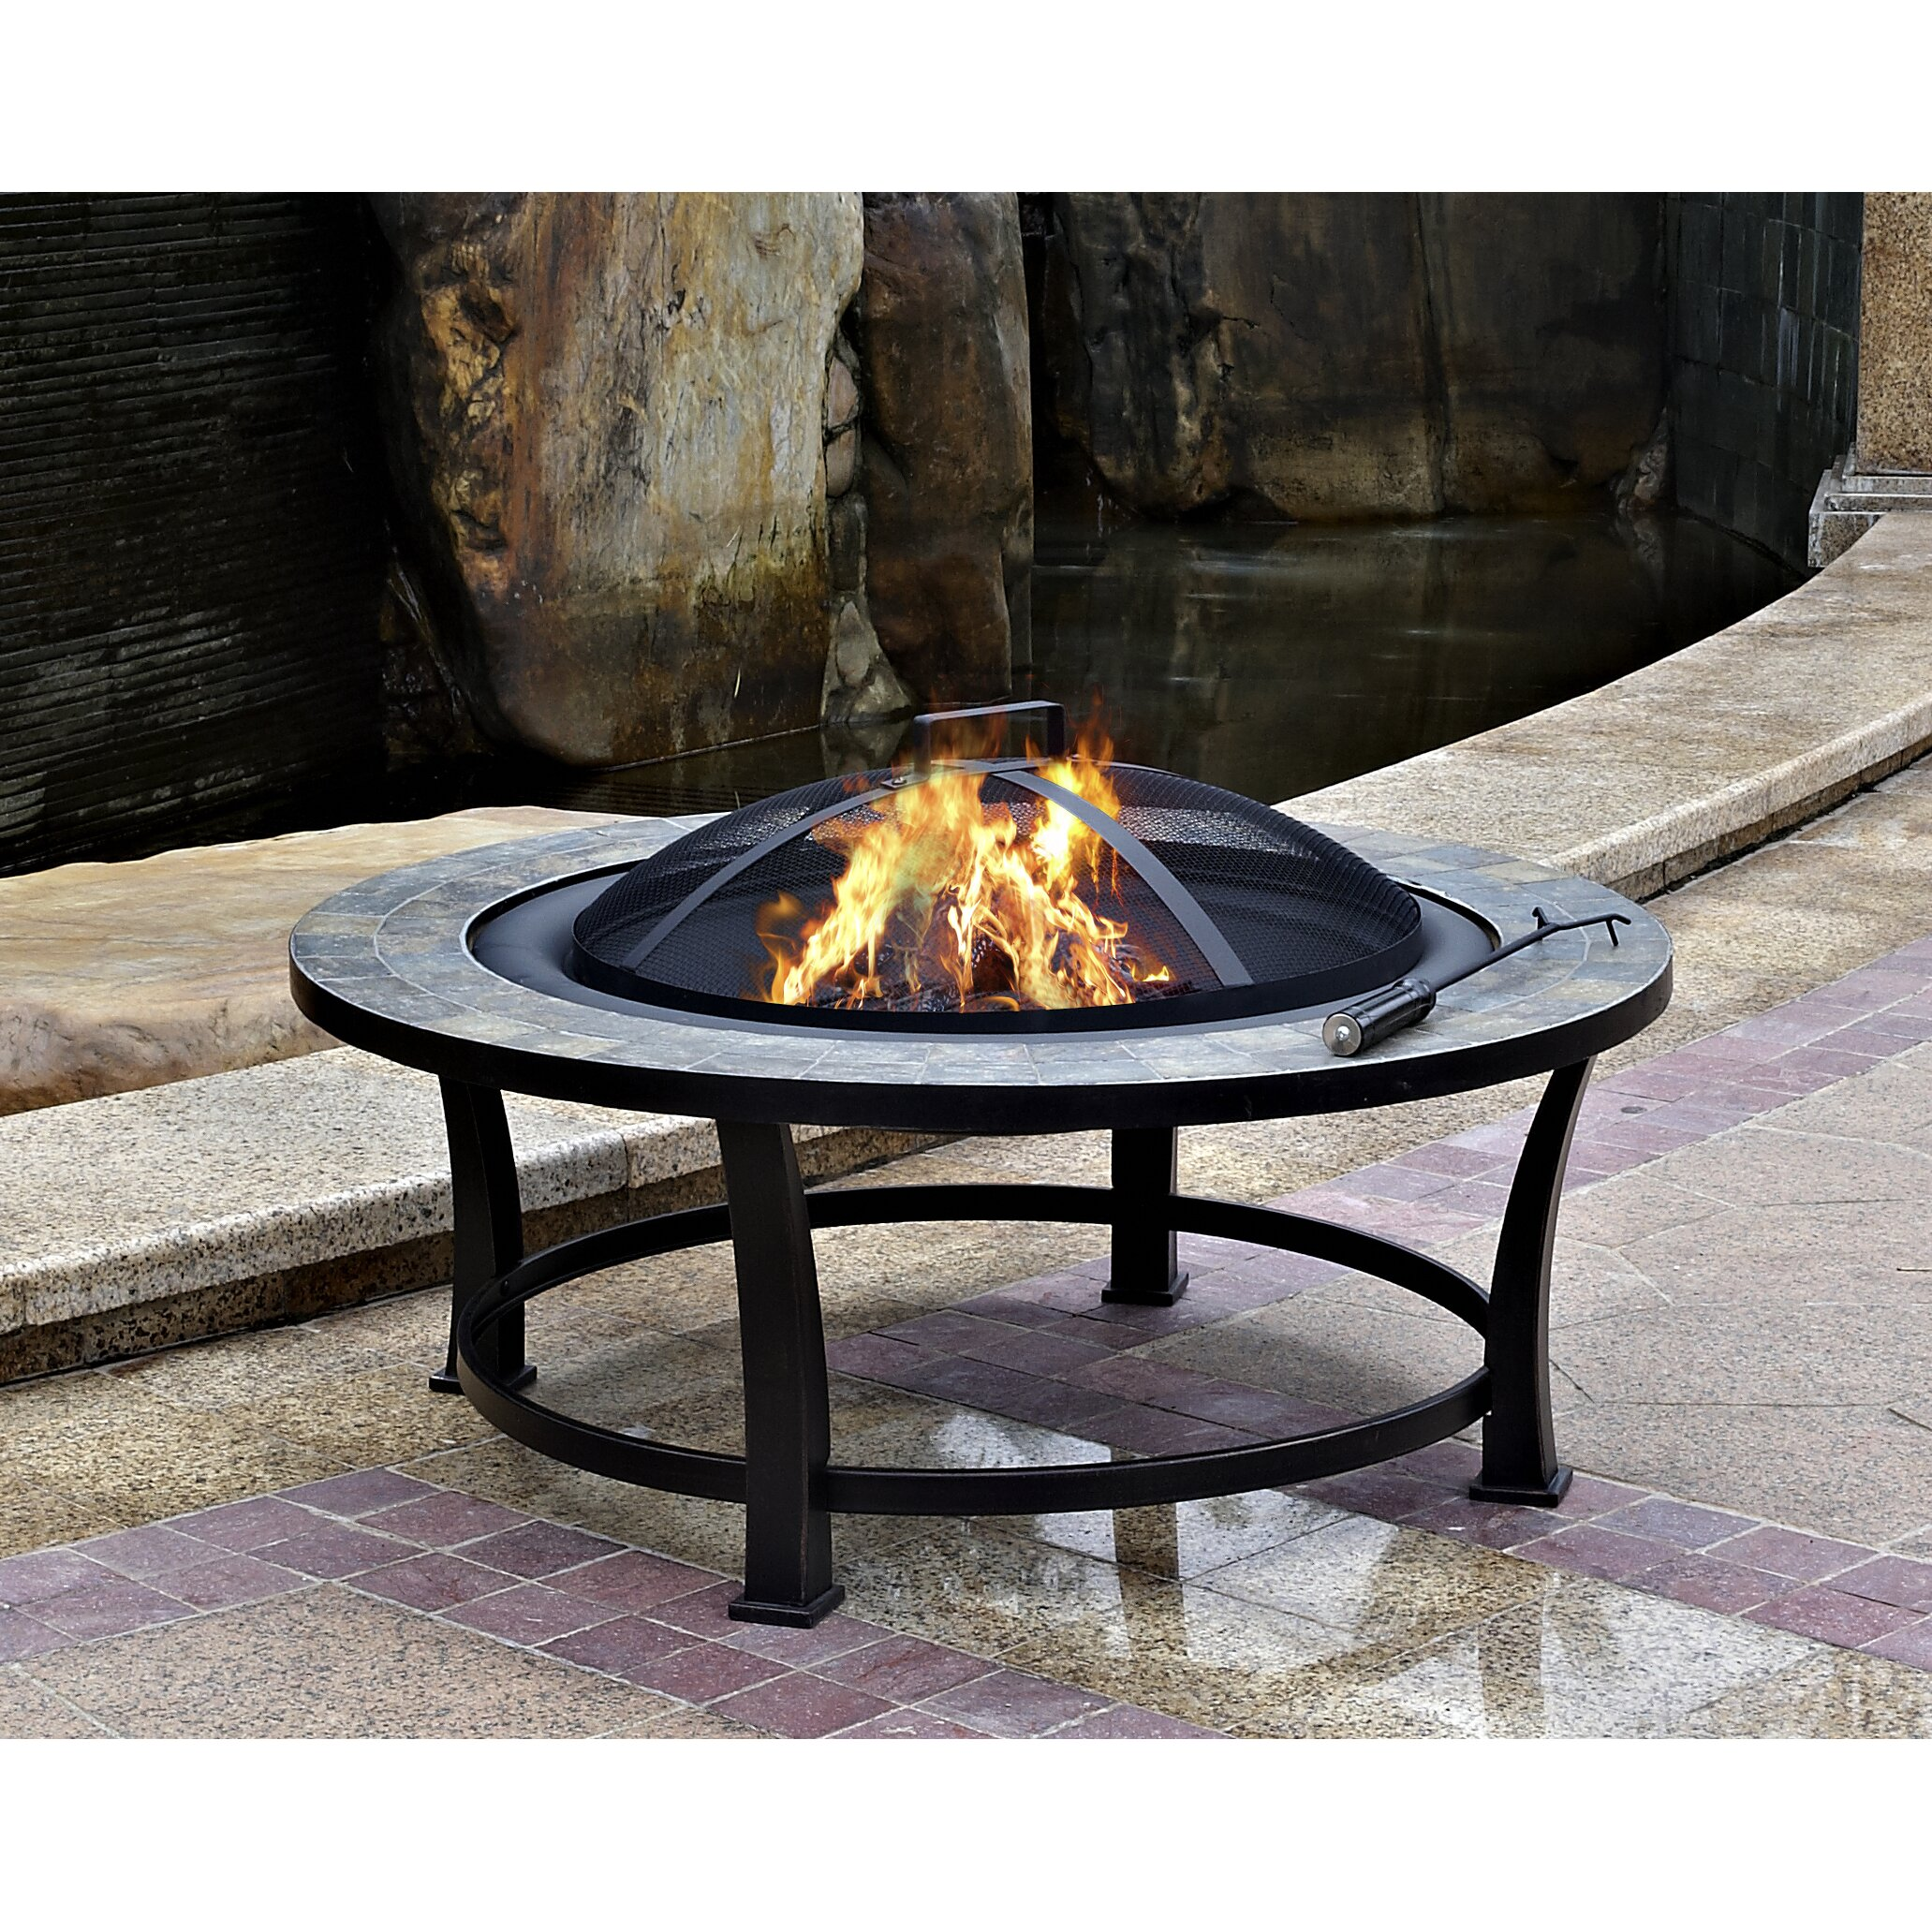 Patio Fire Pits Images: AZ Patio Heaters Wood Burning Fire Pit & Reviews